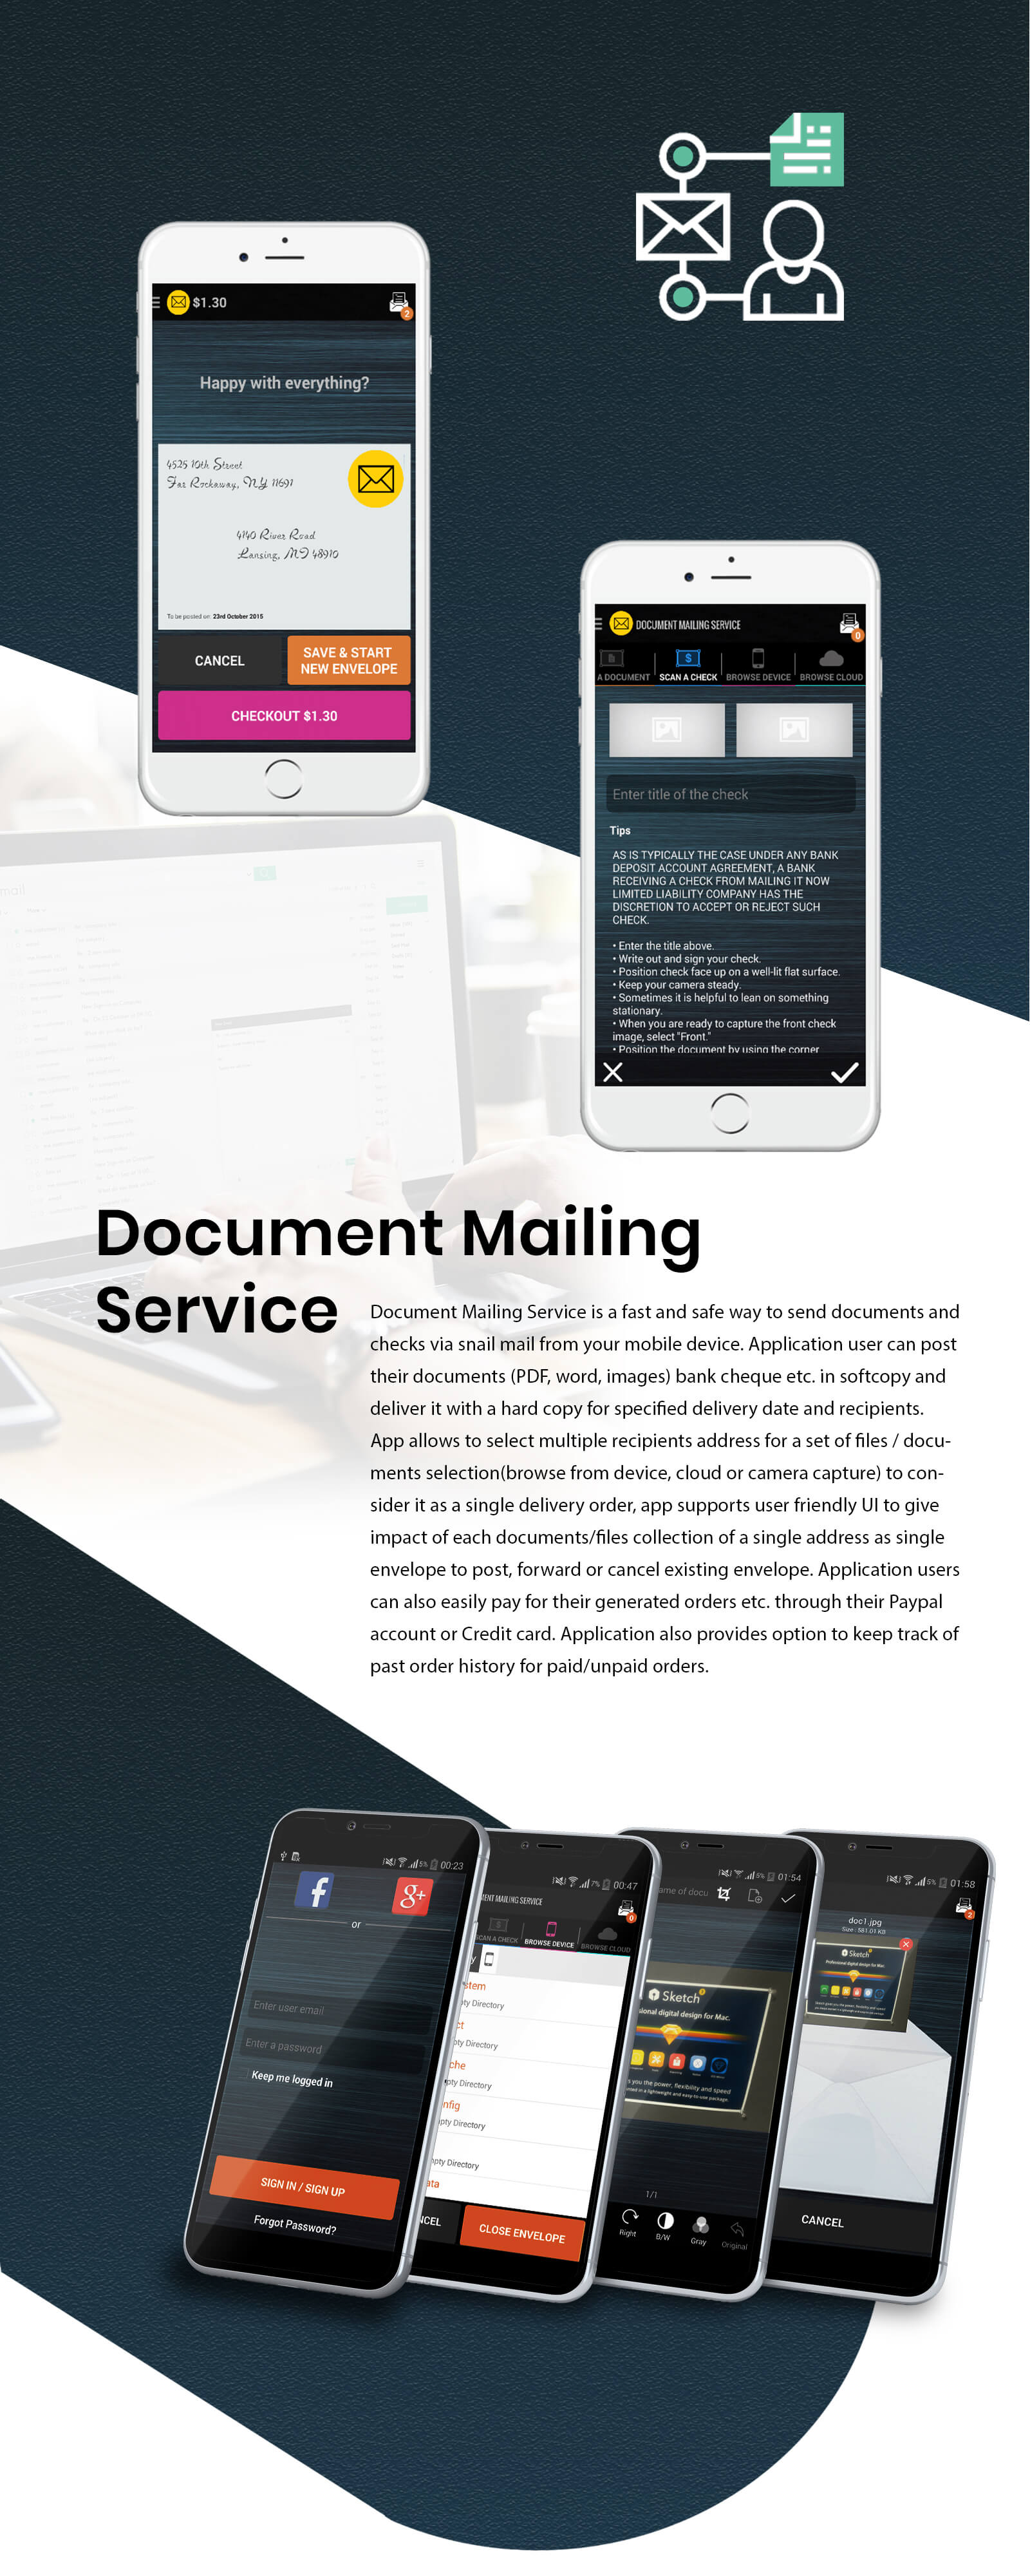 Document Mailing Service